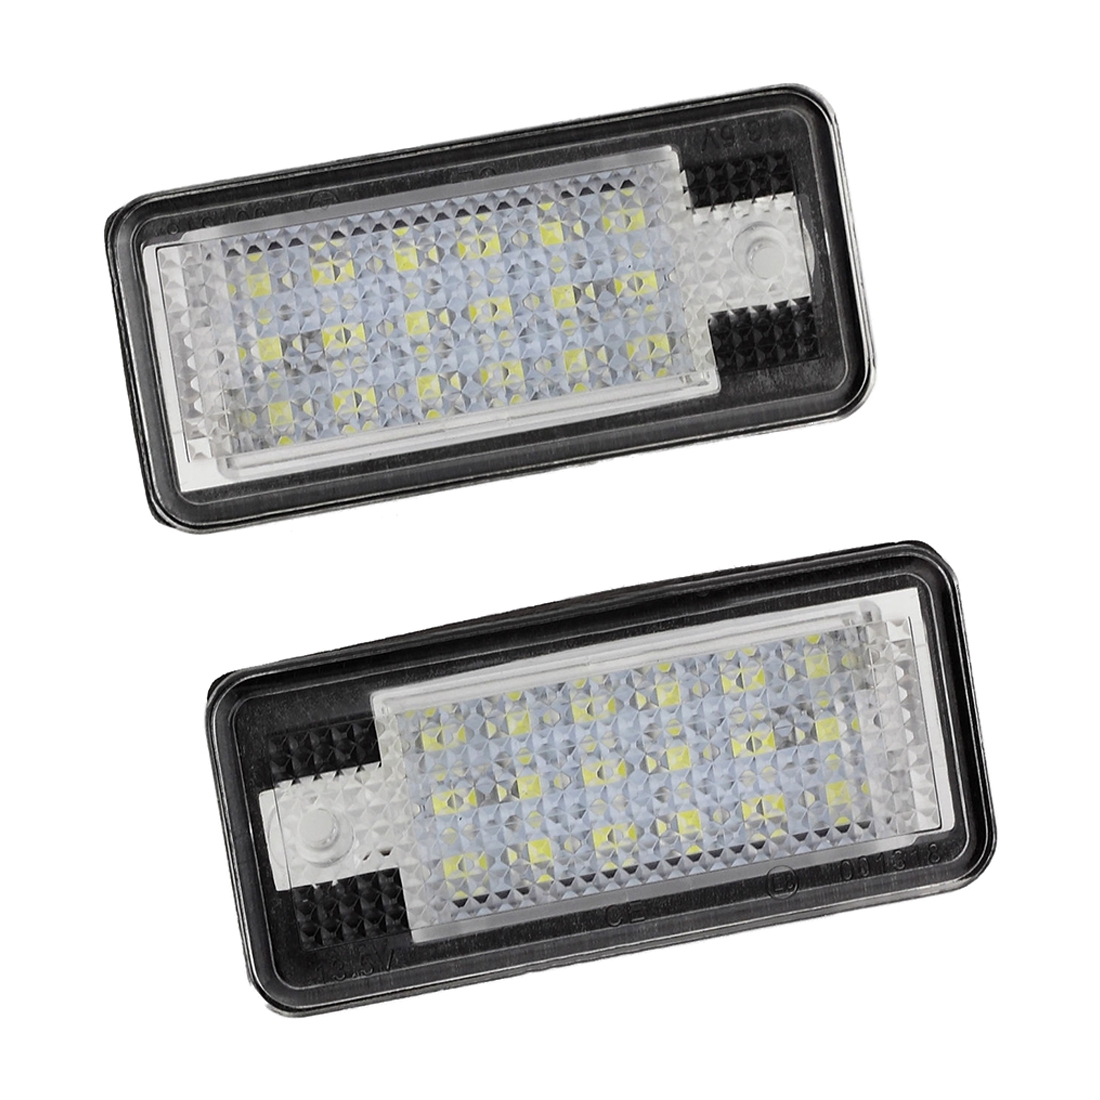 2x 18 LED License Number Plate Light Lamp For Audi A3 S3 A4 S4 B6 A6 S6 A8 S8 Q7 free ship turbo k03 29 53039700029 53039880029 058145703j n058145703c for audi a4 a6 vw passat 1 8t amg awm atw aug bfb aeb 1 8l